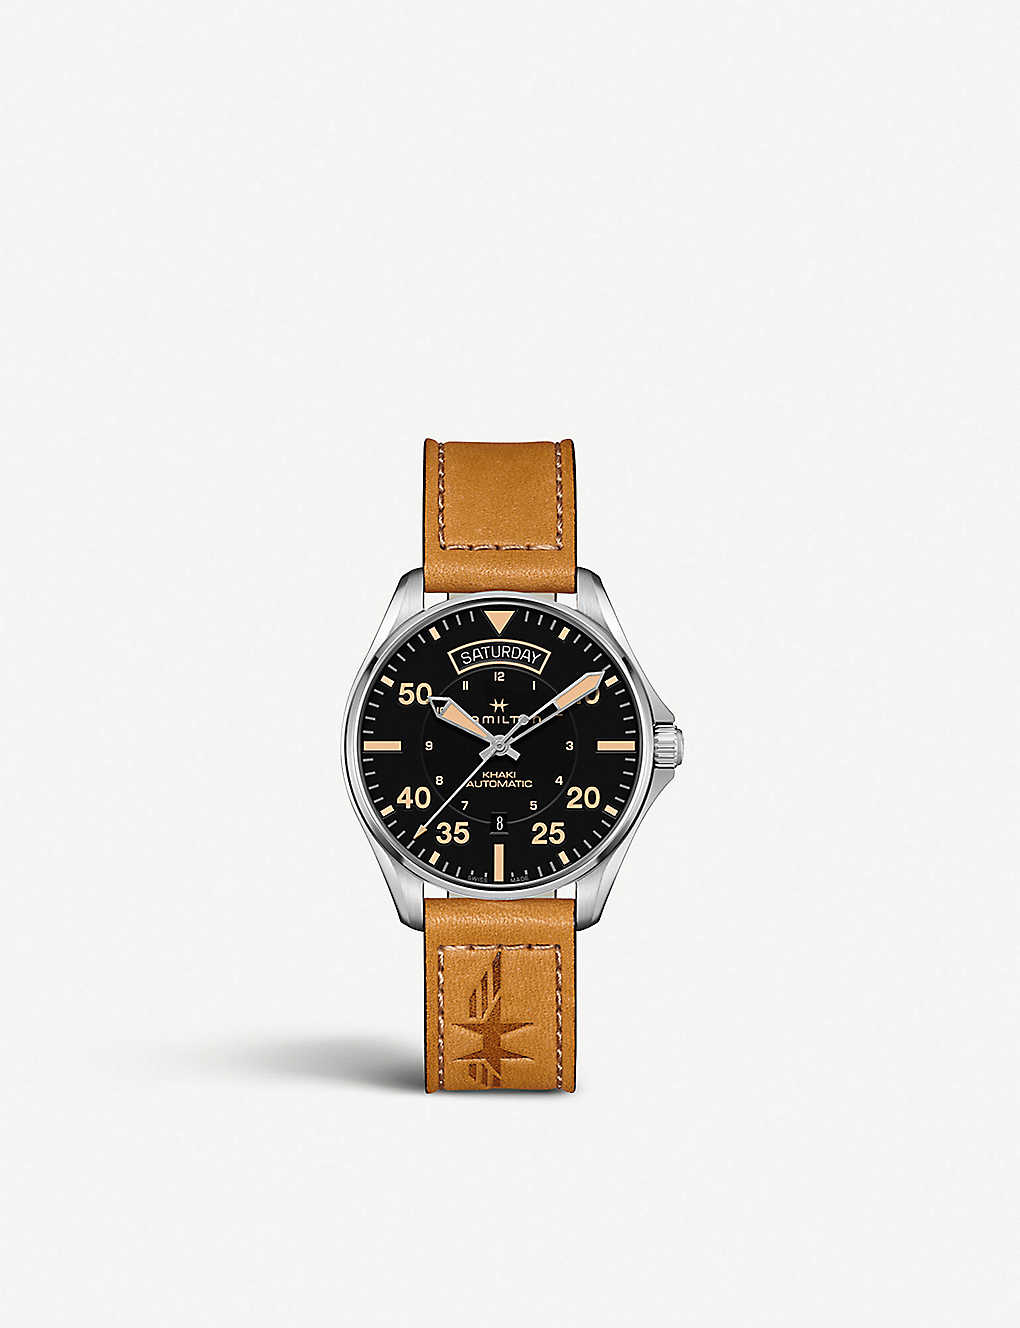 92fc37a37 HAMILTON H64645531 Khaki Aviation Day Date stainless steel and suede watch